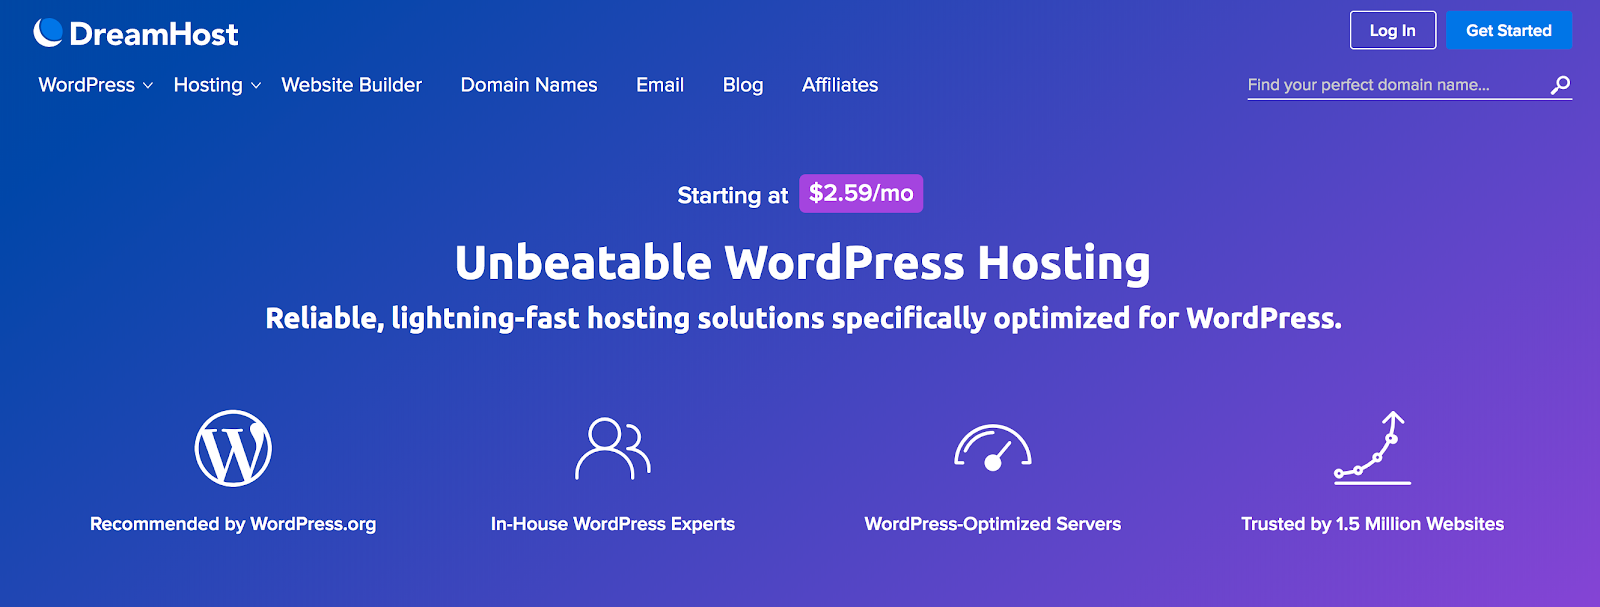 DreamHost's WordPress Hosting